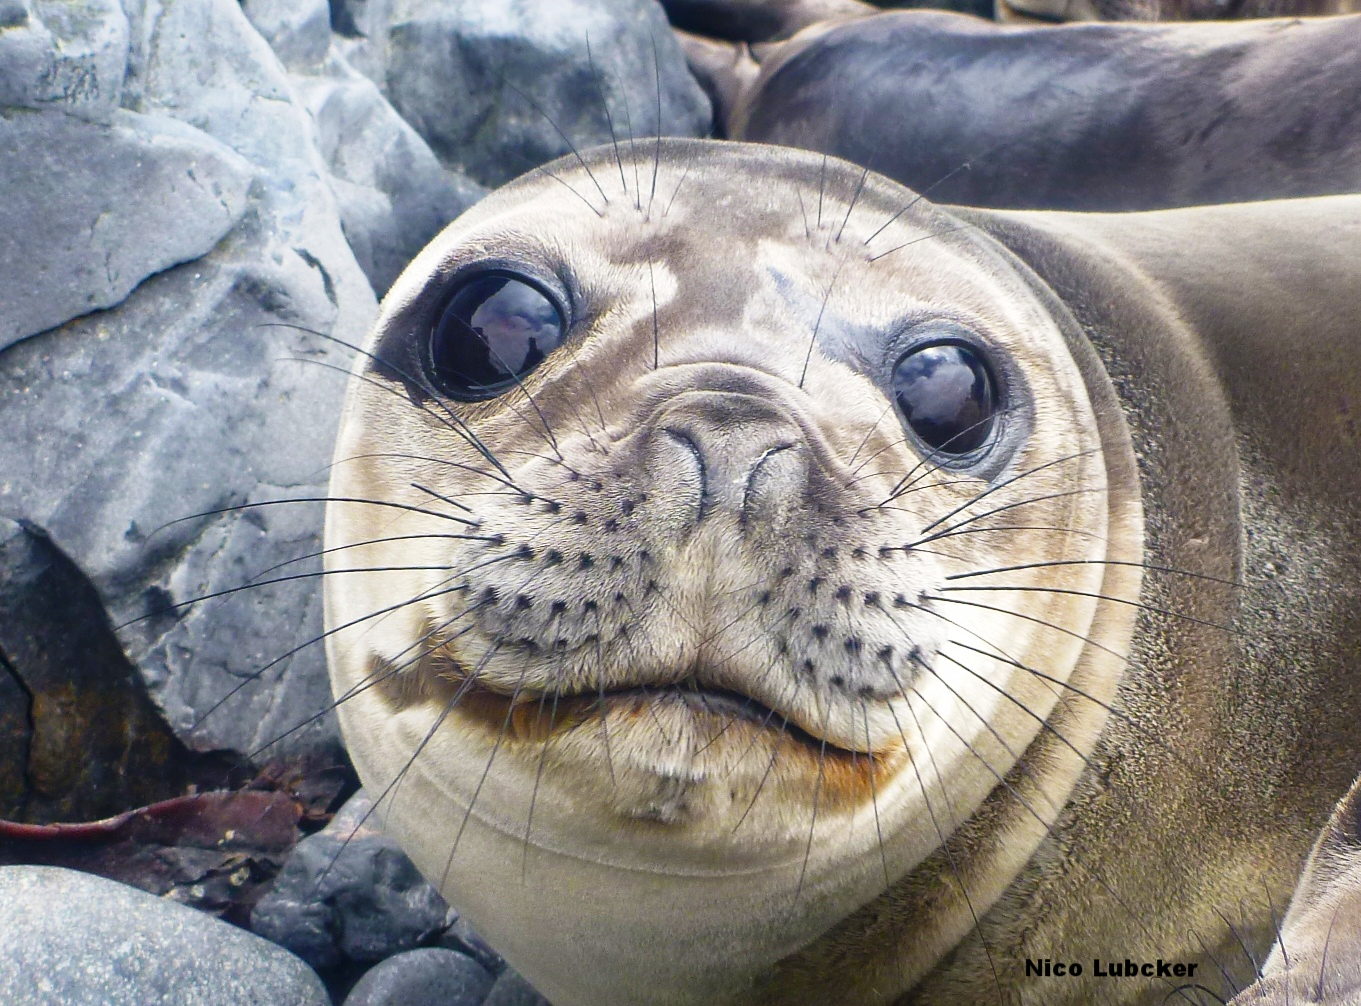 A southern elephant seal's whiskers can tell us what the animal ate, and when it did so! Photo: Nico Lübcker